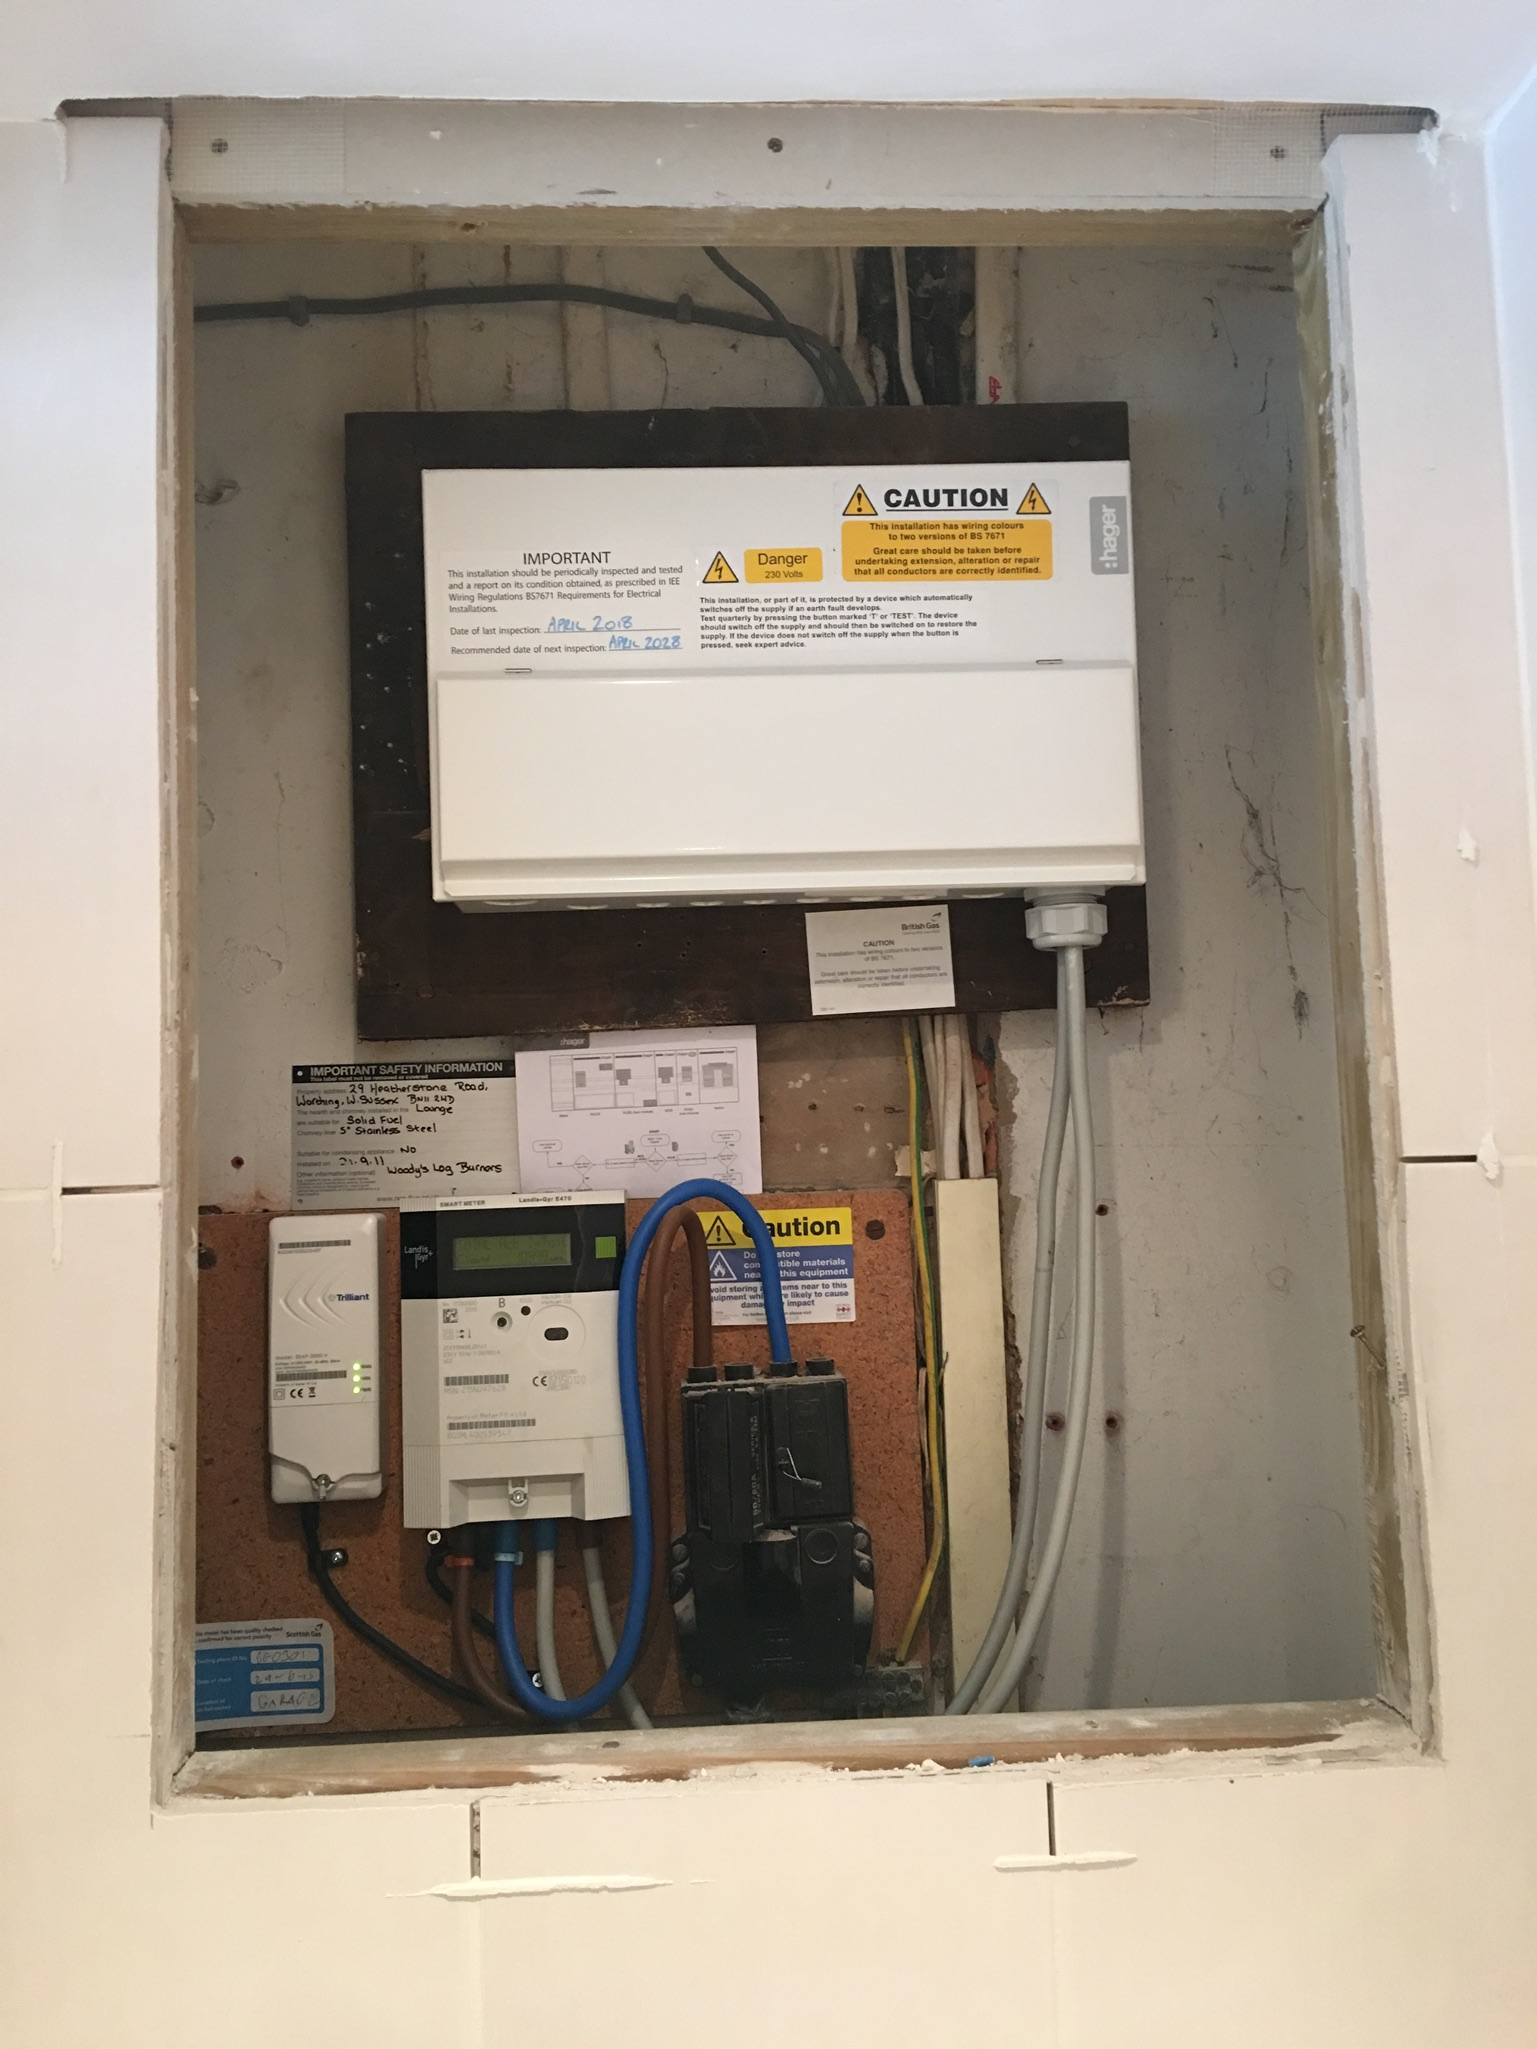 replace fuse box wiring diagram rh c9 cdu grossefehn de replace fuse box with breaker box cost replace fuse box with consumer unit